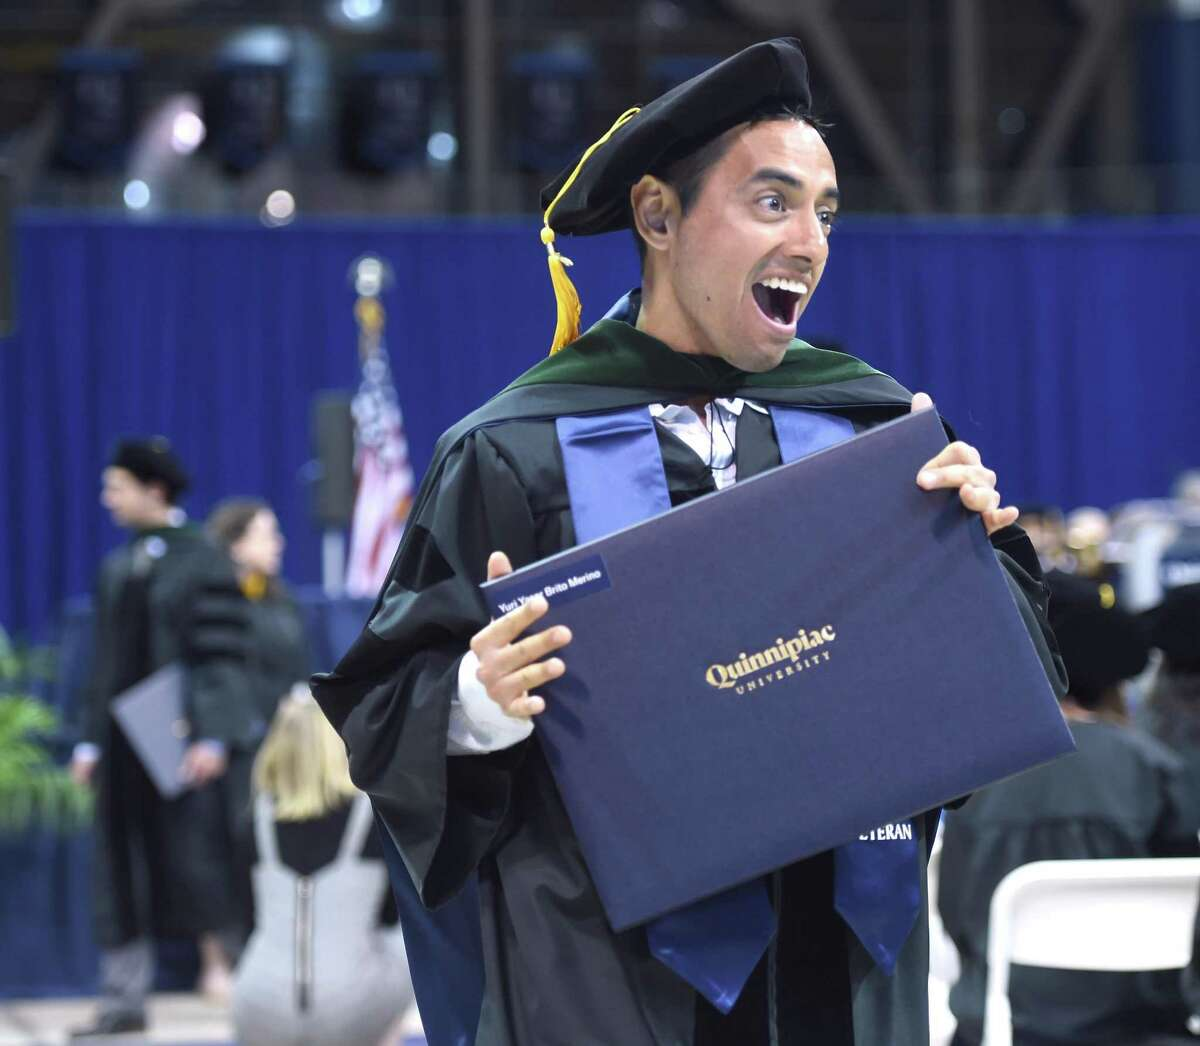 Yuri Brito shows off his Doctor of Medicine degree at the Frank H. Netter MD School of Medicine Commencement Exercises at Quinnipiac University's People's United Center in Hamden on May 10, 2019.